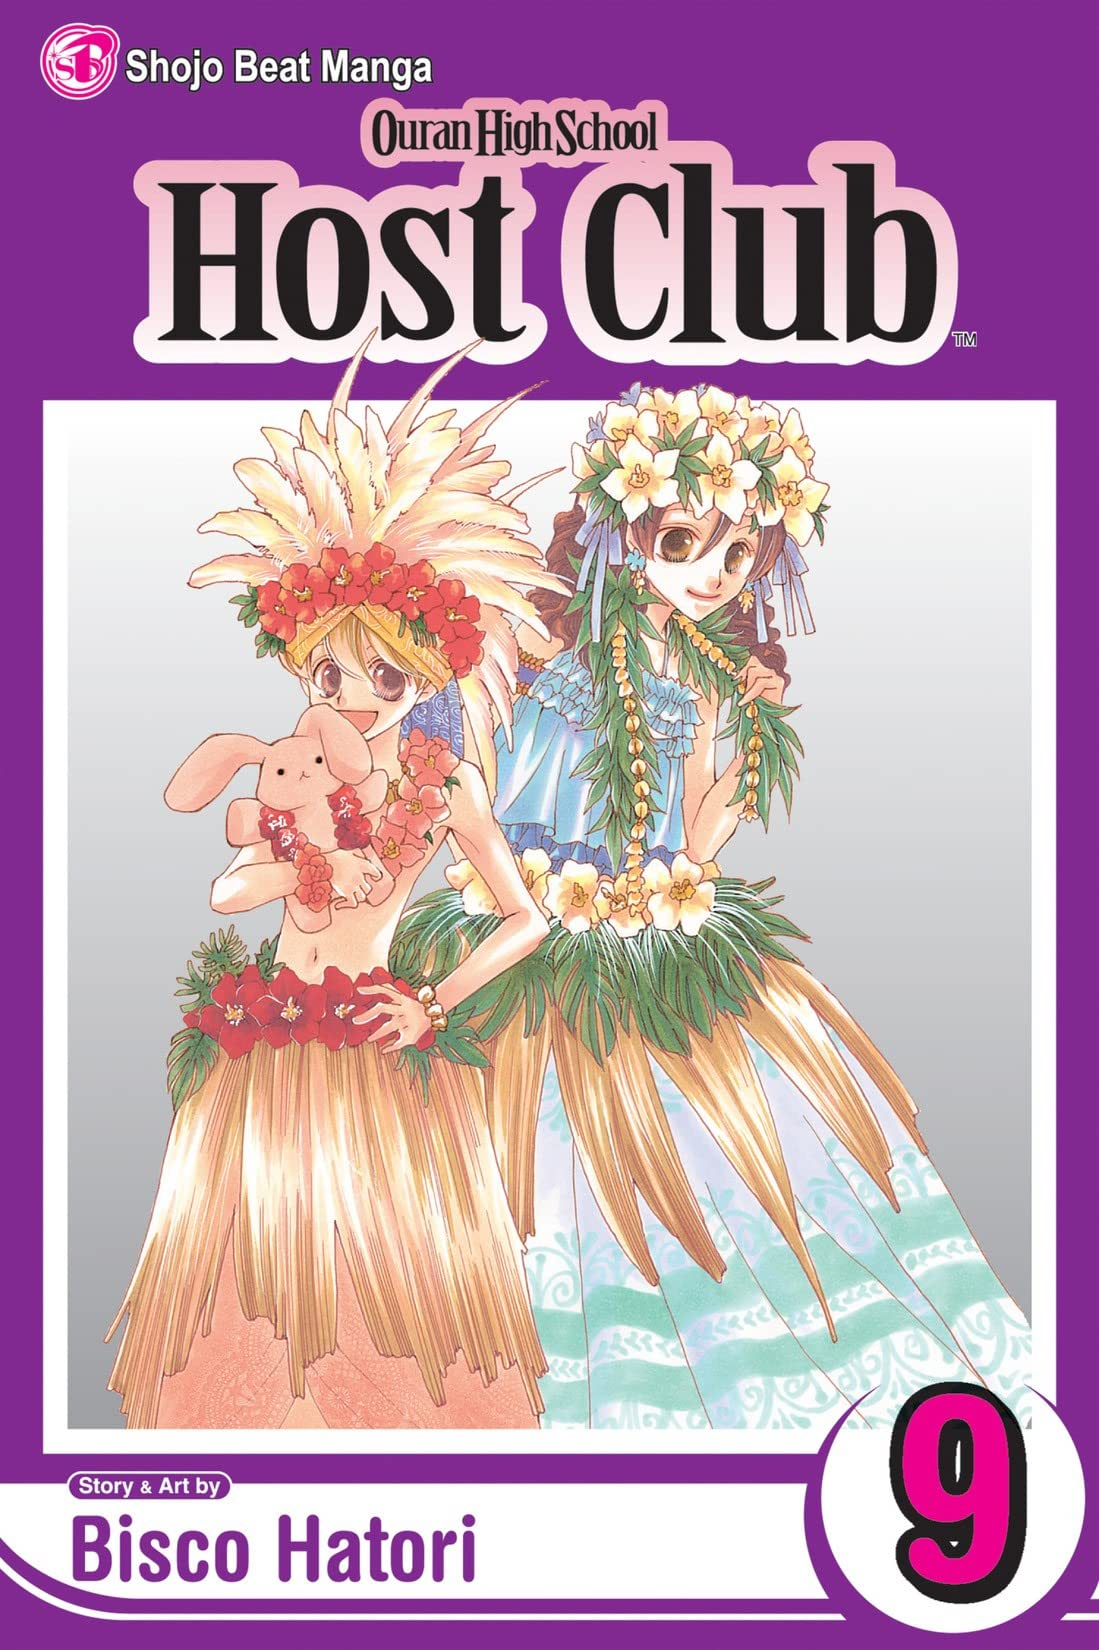 Ouran High School Host Club Vol. 9